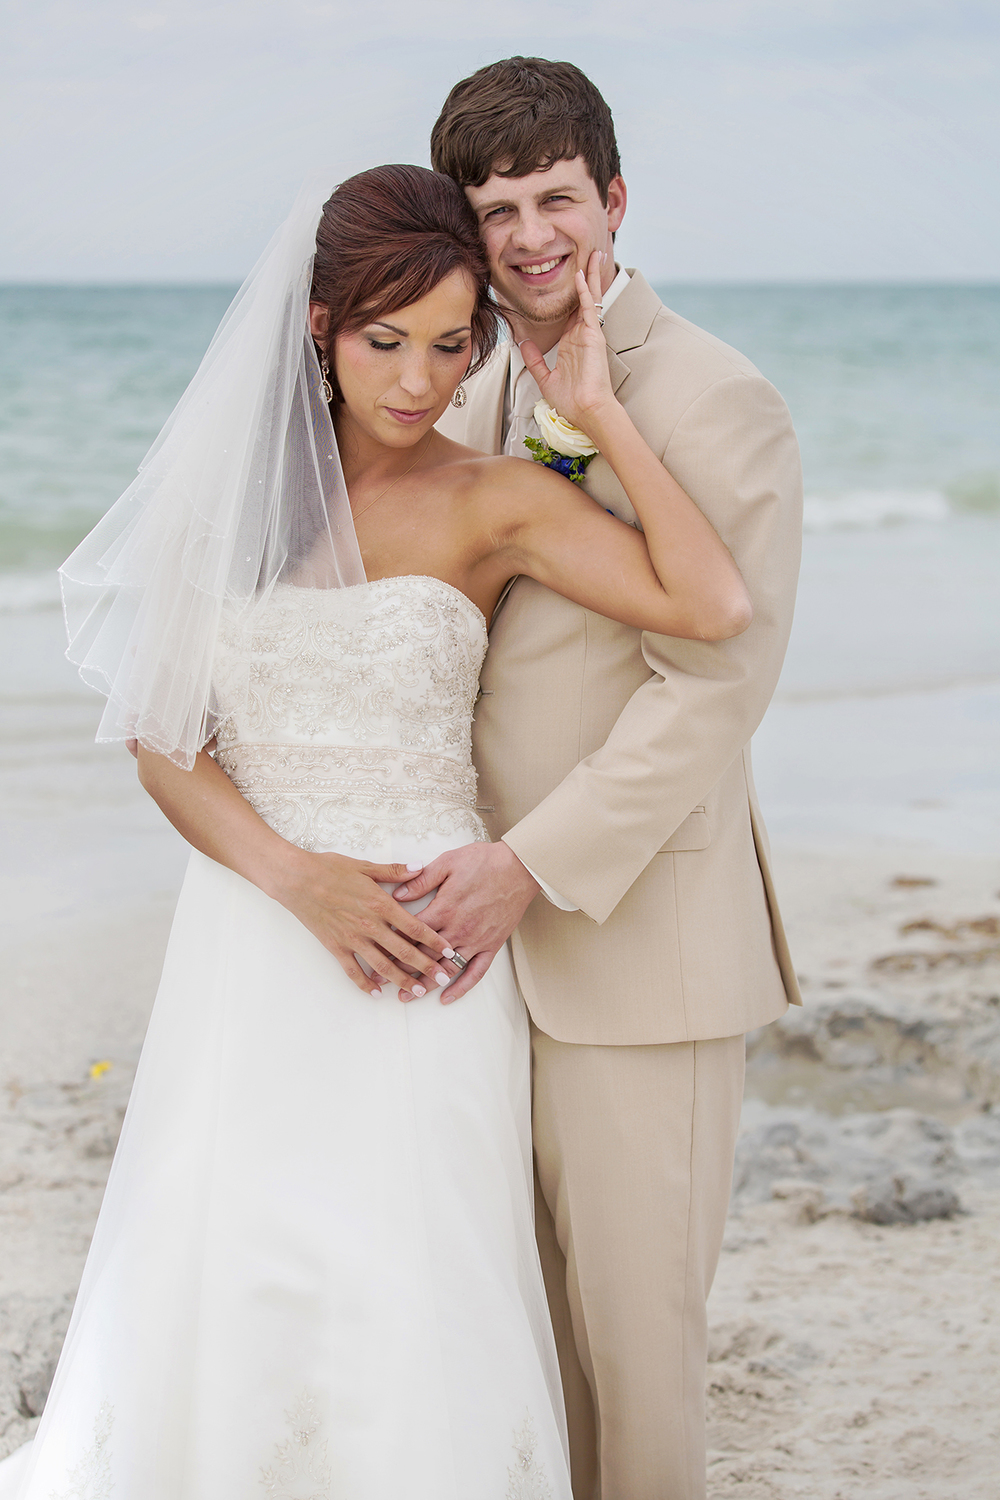 Lockhart Clearwater Beach Wedding Photographer-130618.jpg